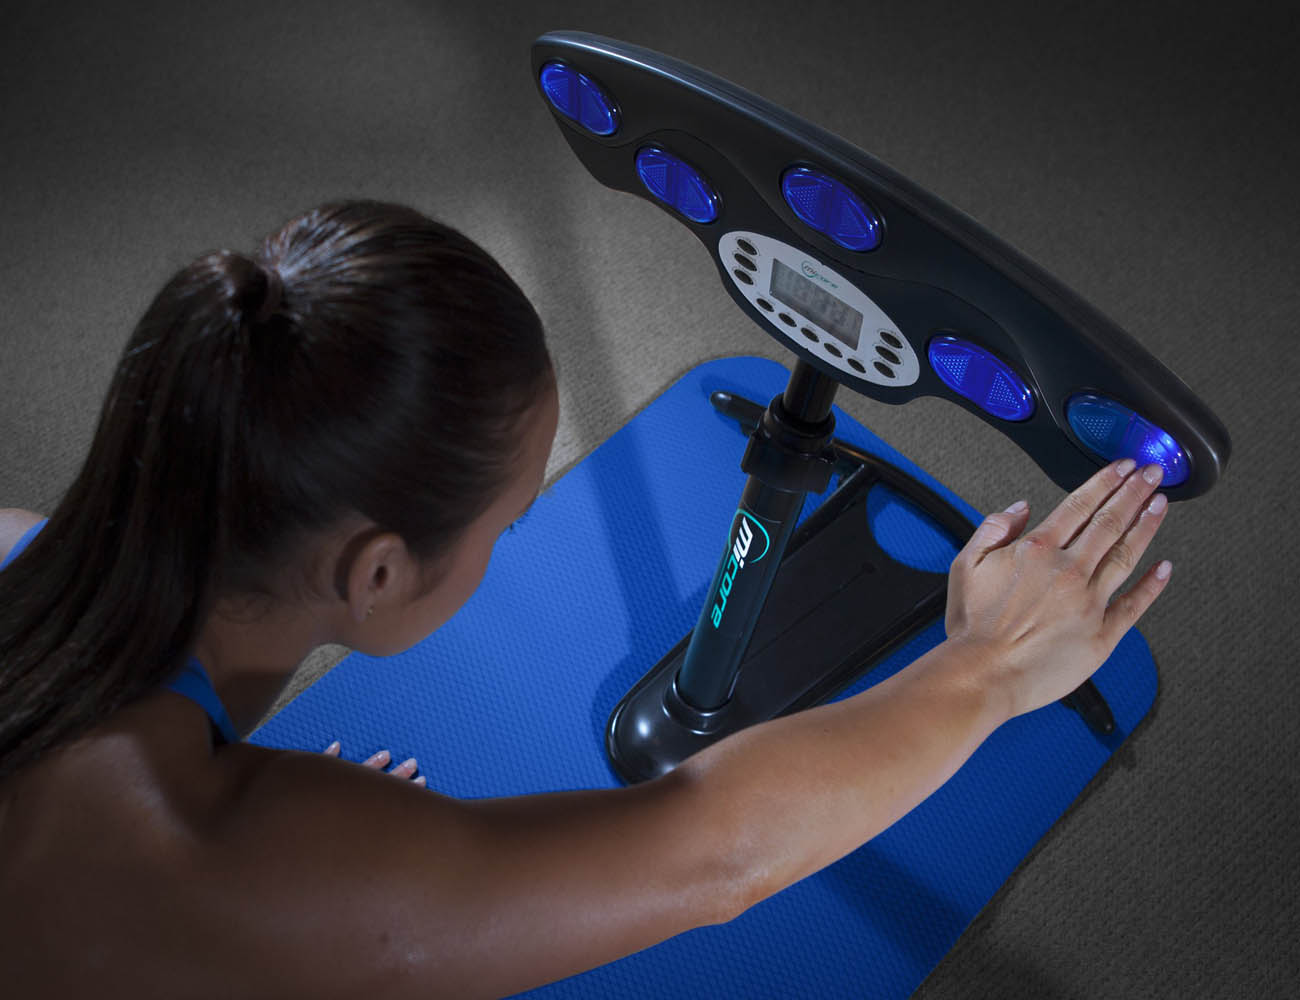 Micore Fitness – The Ultimate Core Workout From Your Home